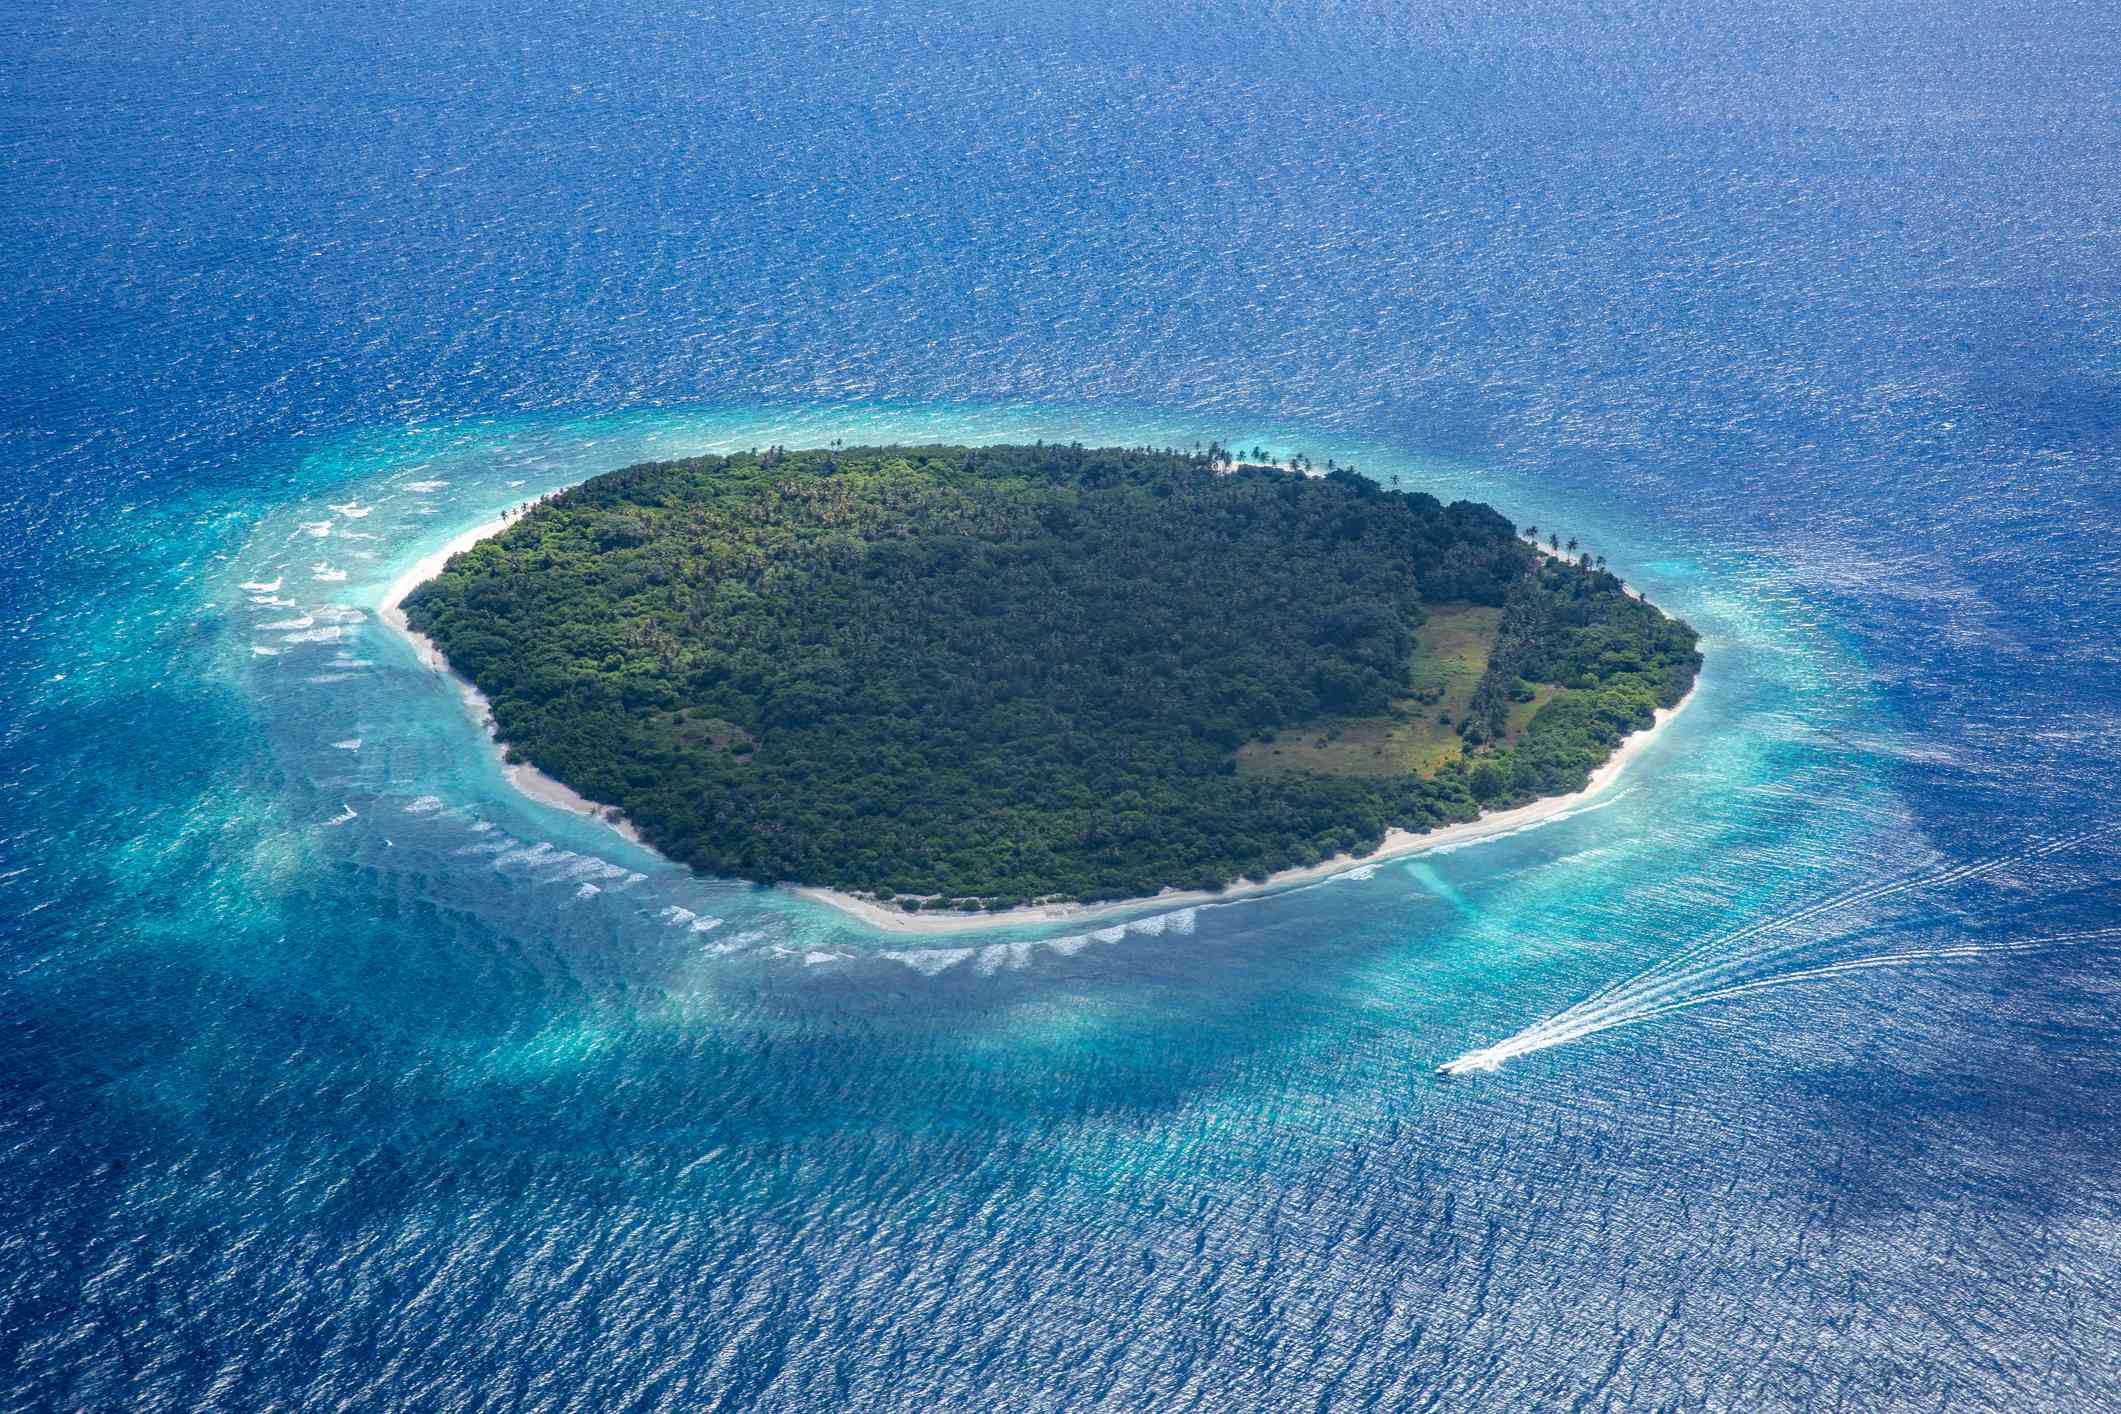 aerial view of one of the Maldives Islands